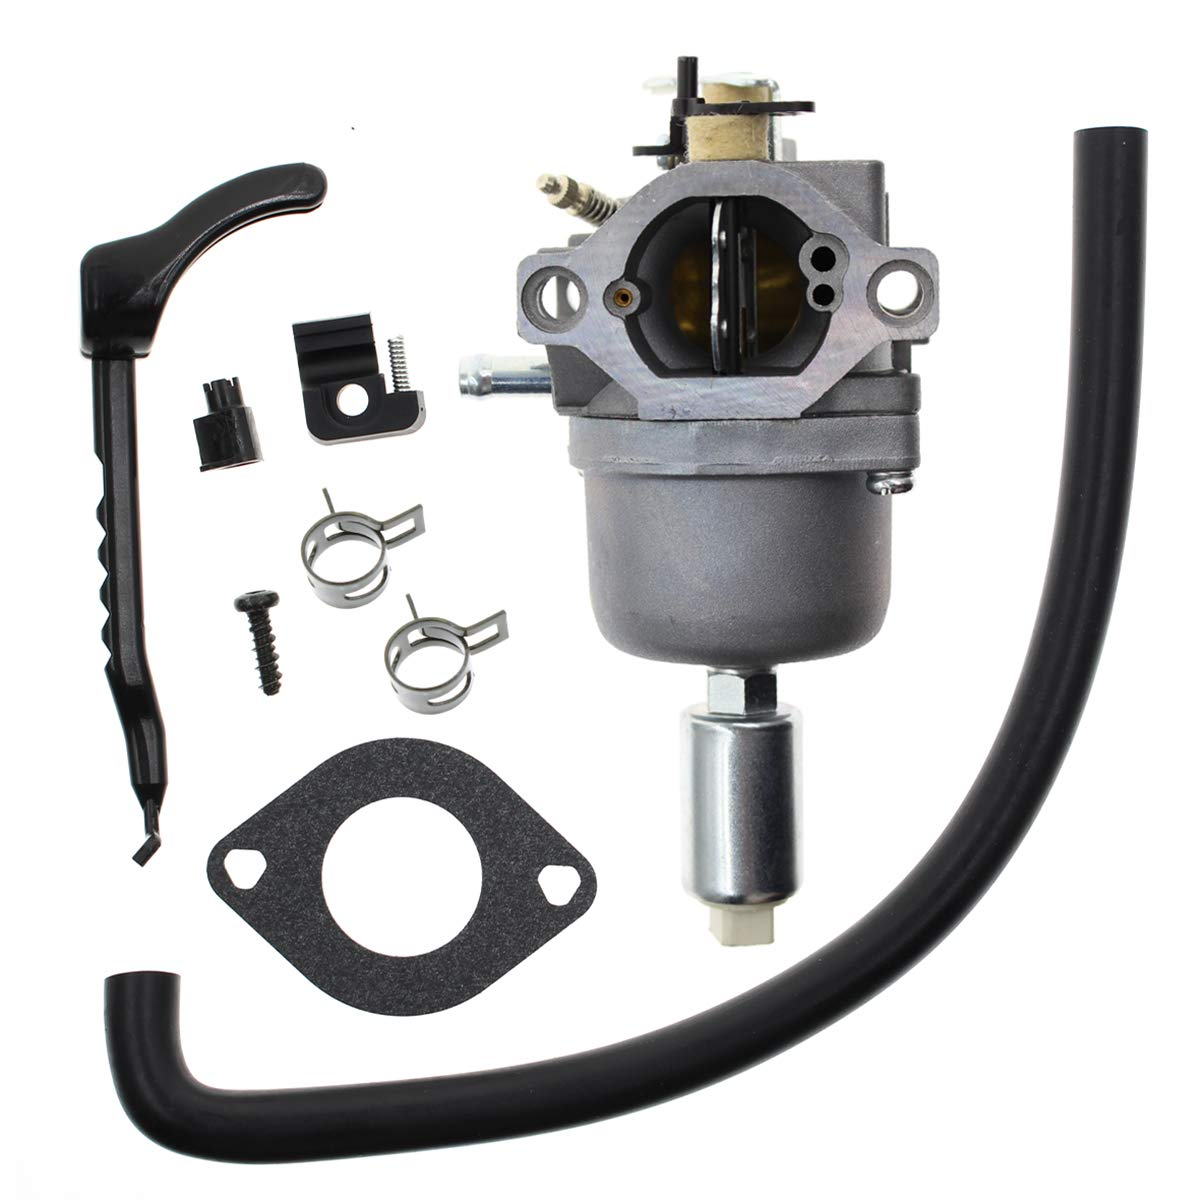 Carbhub 799727 Carburetor for Briggs & Stratton 698620 690194 791886 799727 496796 499153 695412 792768 Carb with 14hp 15hp 16hp 17hp 18hp Engines - 799727 Carburetor